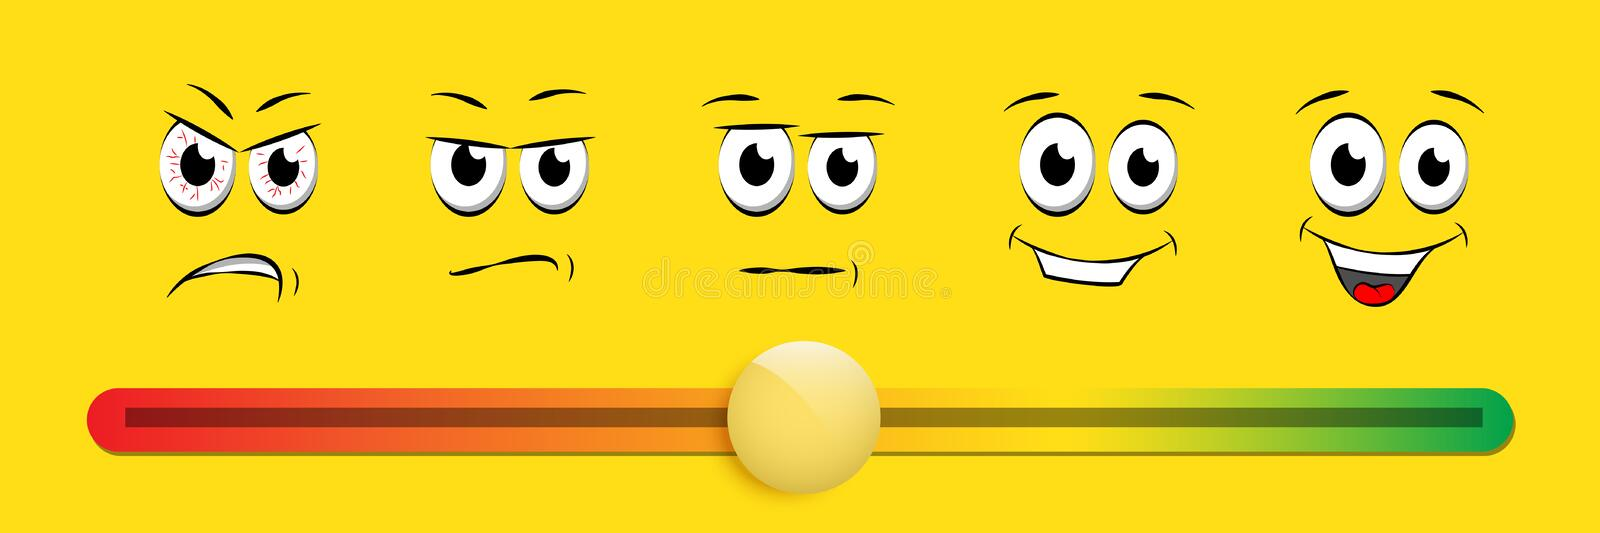 Smile slider rating flat vector illustration on yellow background royalty free illustration